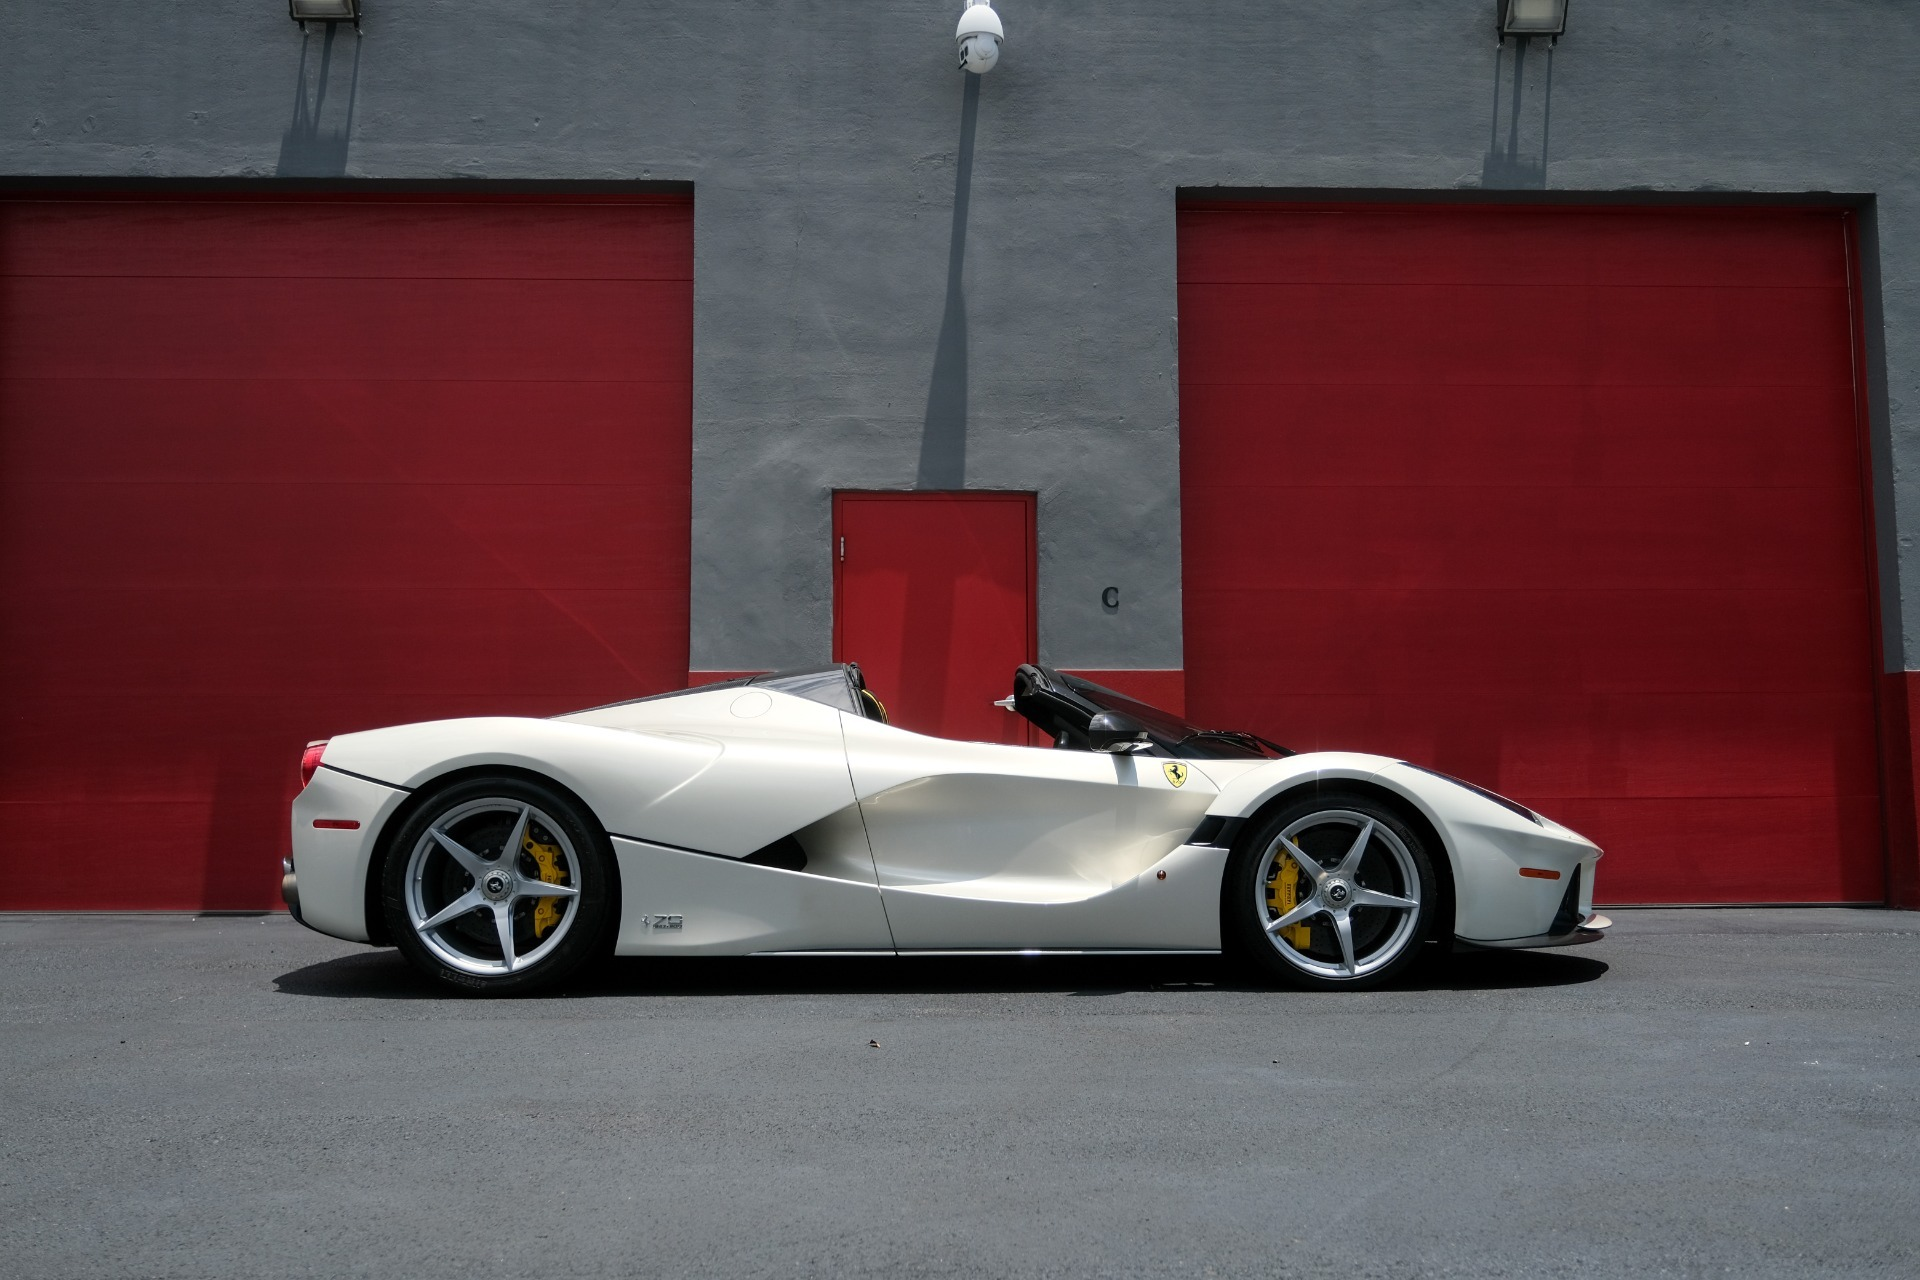 Used 2017 Ferrari LAFERRARI APERTA HYPERCAR / 963HP / HY-KERS / CARBON FIBER / BREMBO / F1 AUTO for sale Sold at Formula Imports in Charlotte NC 28227 3